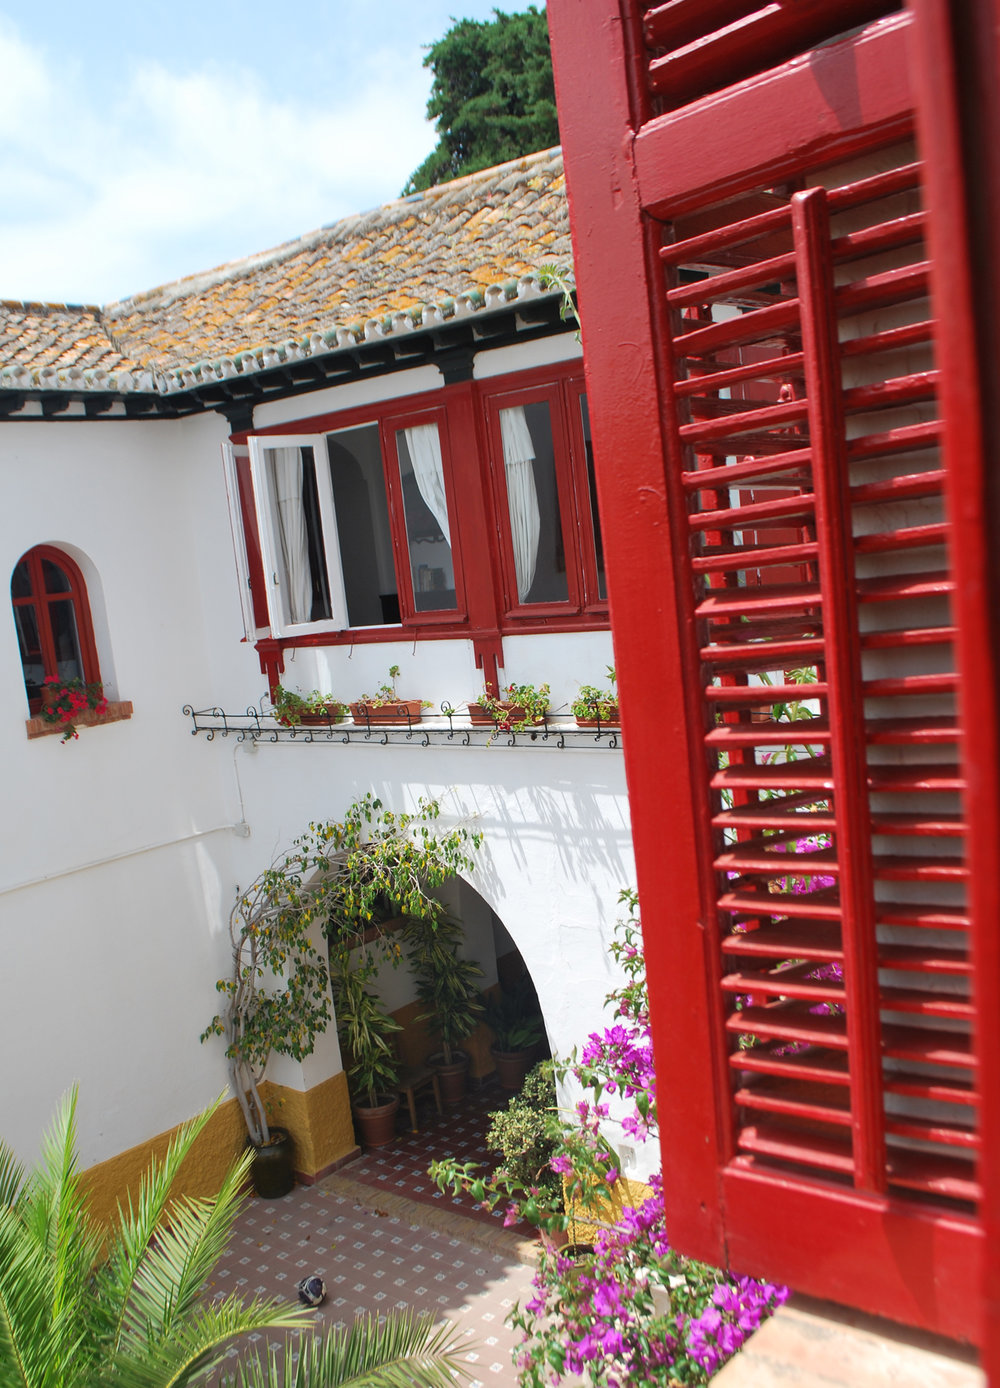 Classic Spanish shutters in red.